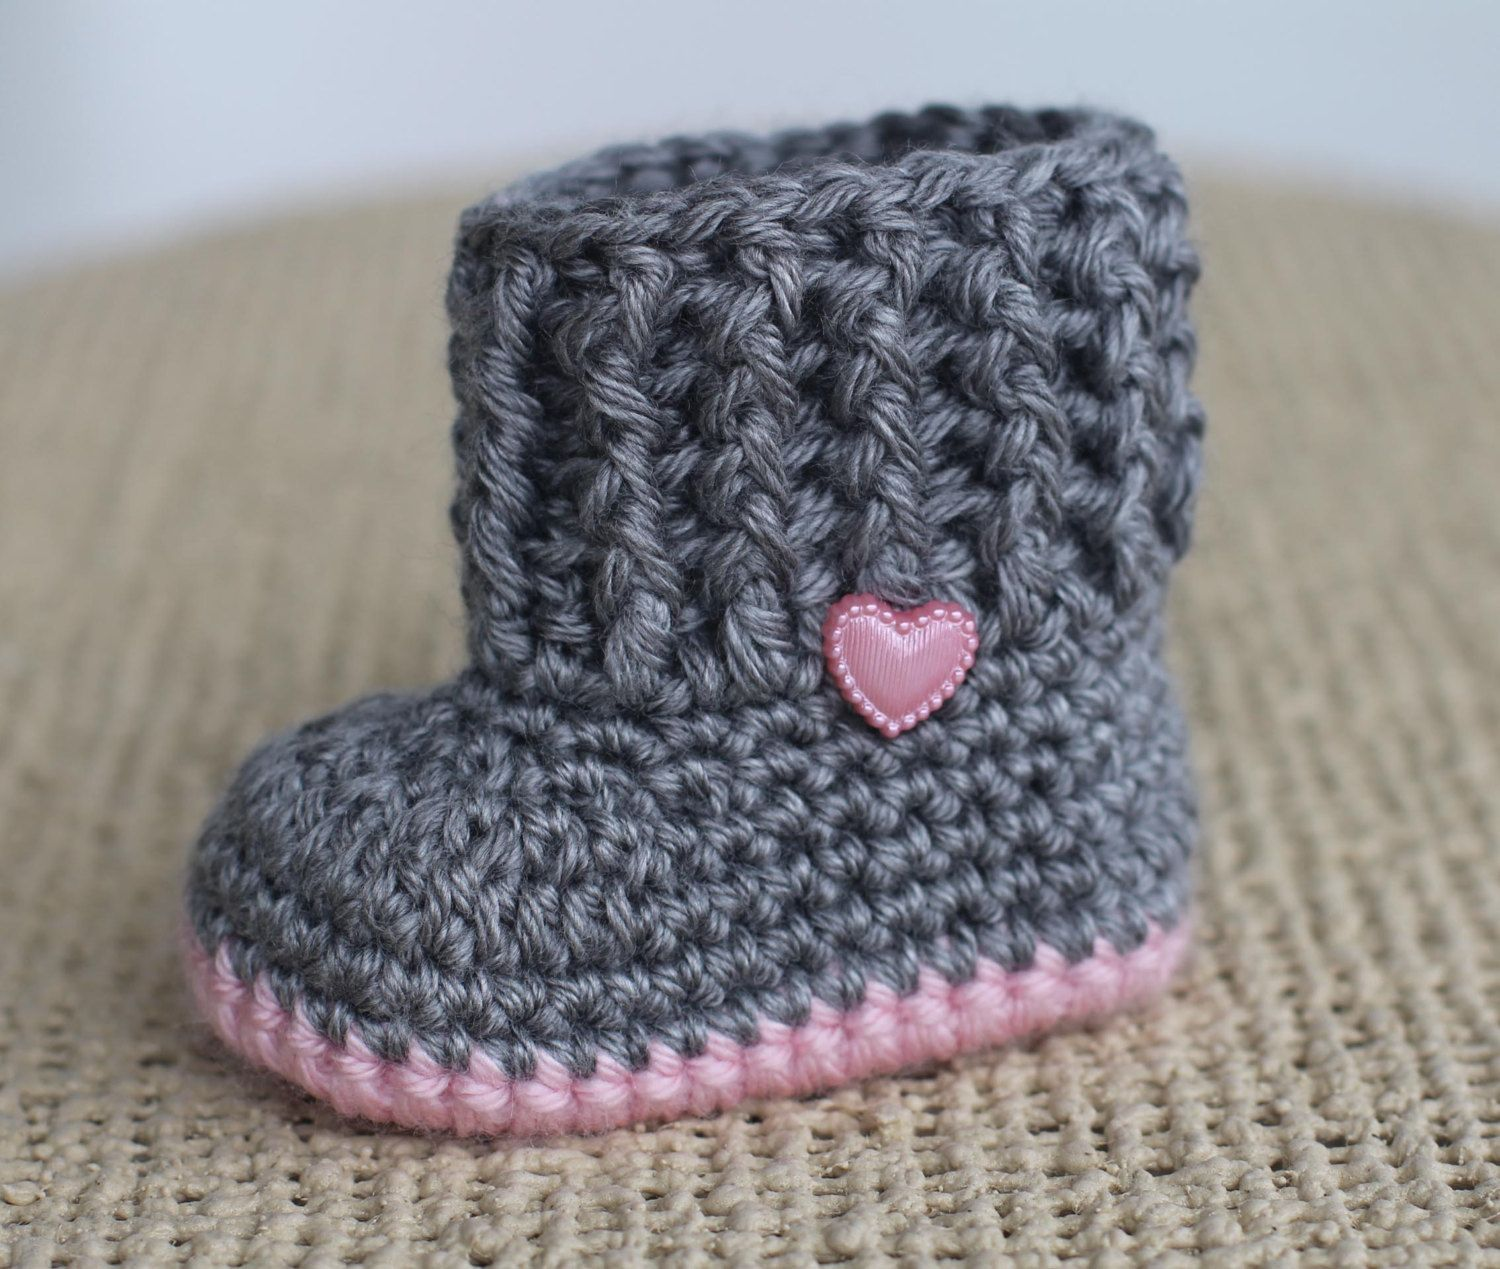 Learn To Crochet Baby shoes - yarnandhooks.com